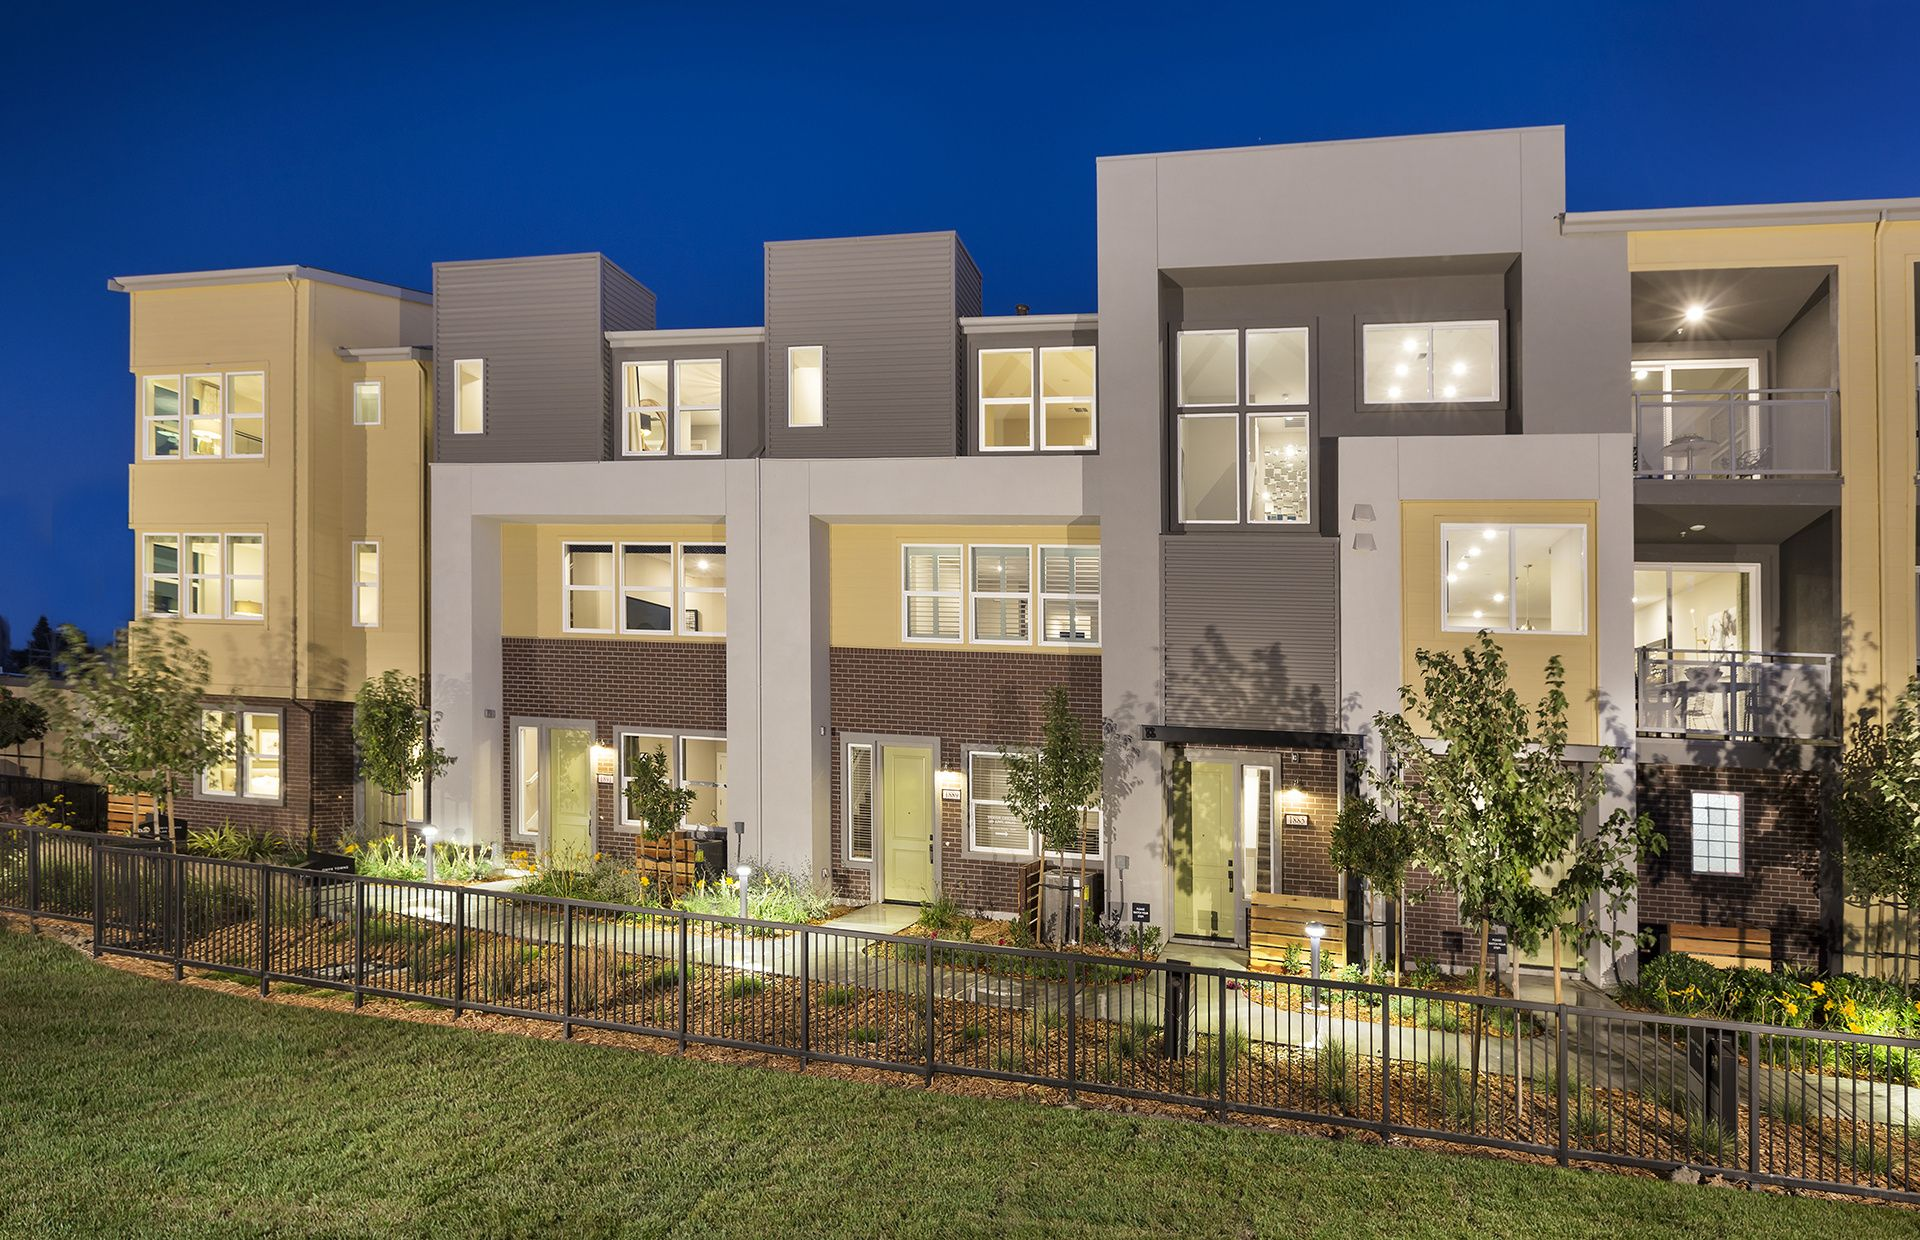 Onyx Is A New Attached Home Community